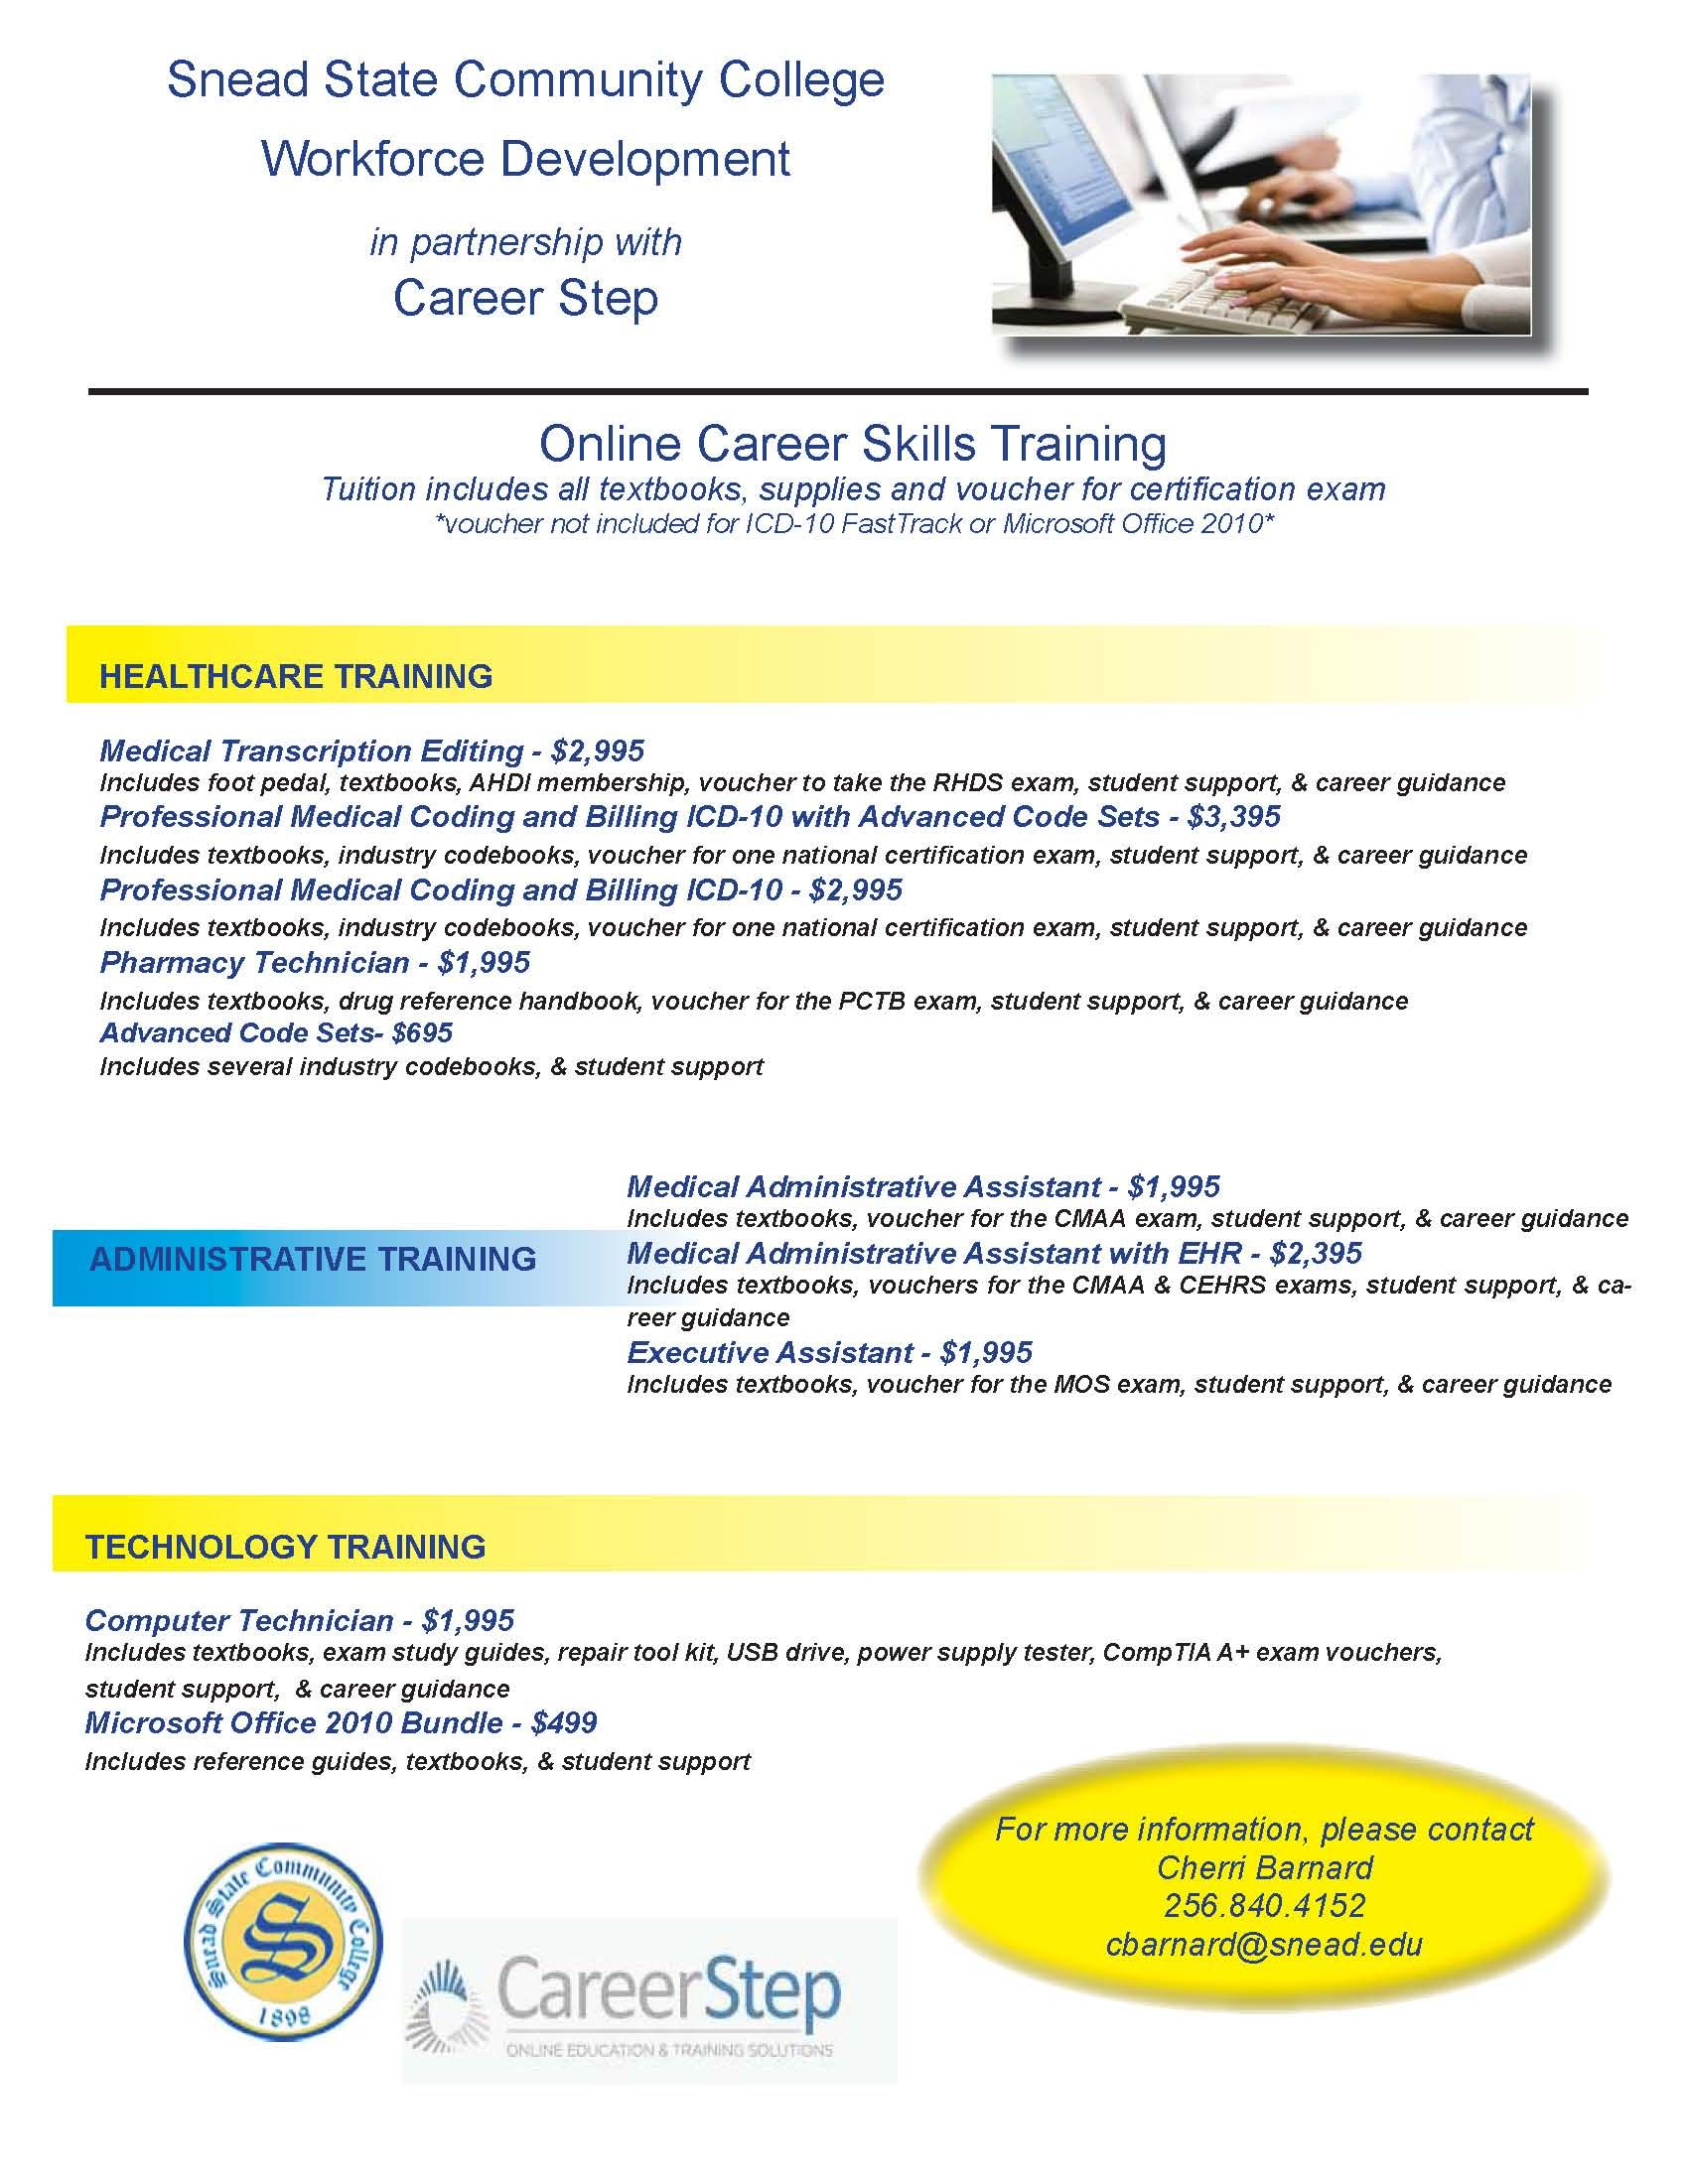 Pin By Snead State Workforce Developm On Career Skills Training Healthcare Training Medical Transcription Skill Training